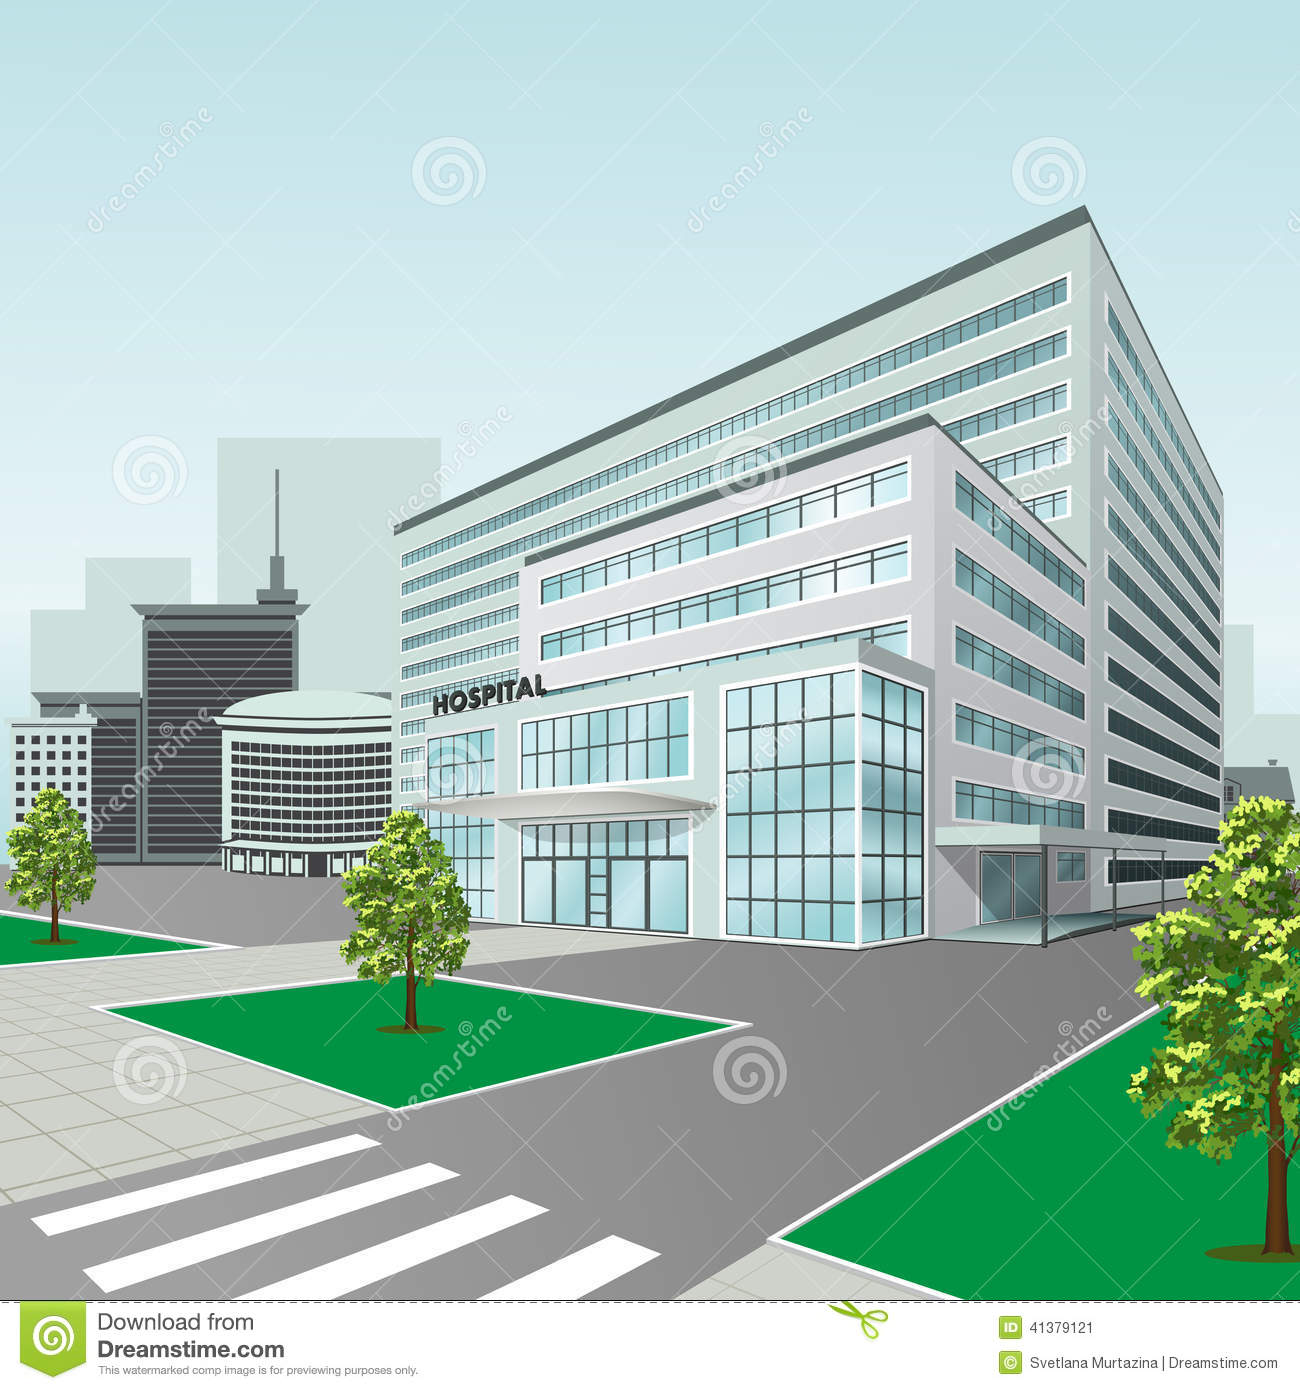 Hospital building on city background stock vector illustration of hospital building on city background malvernweather Gallery